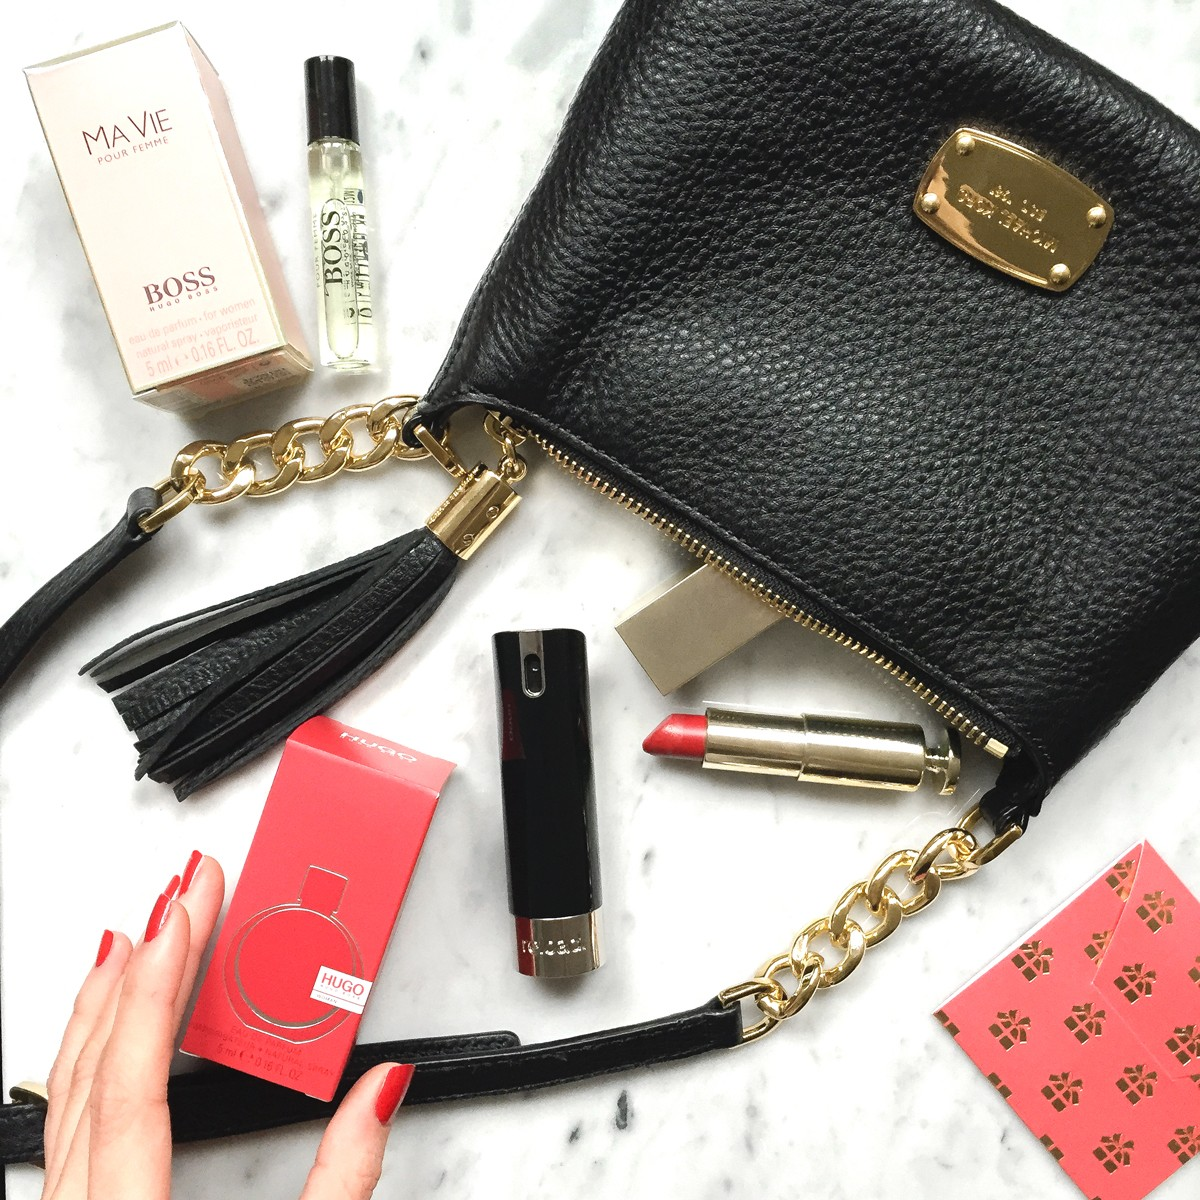 Blogger Adventskalender 2015 II How I met my outfit by Dana Lohmüller II  3 x reload Discovery Box